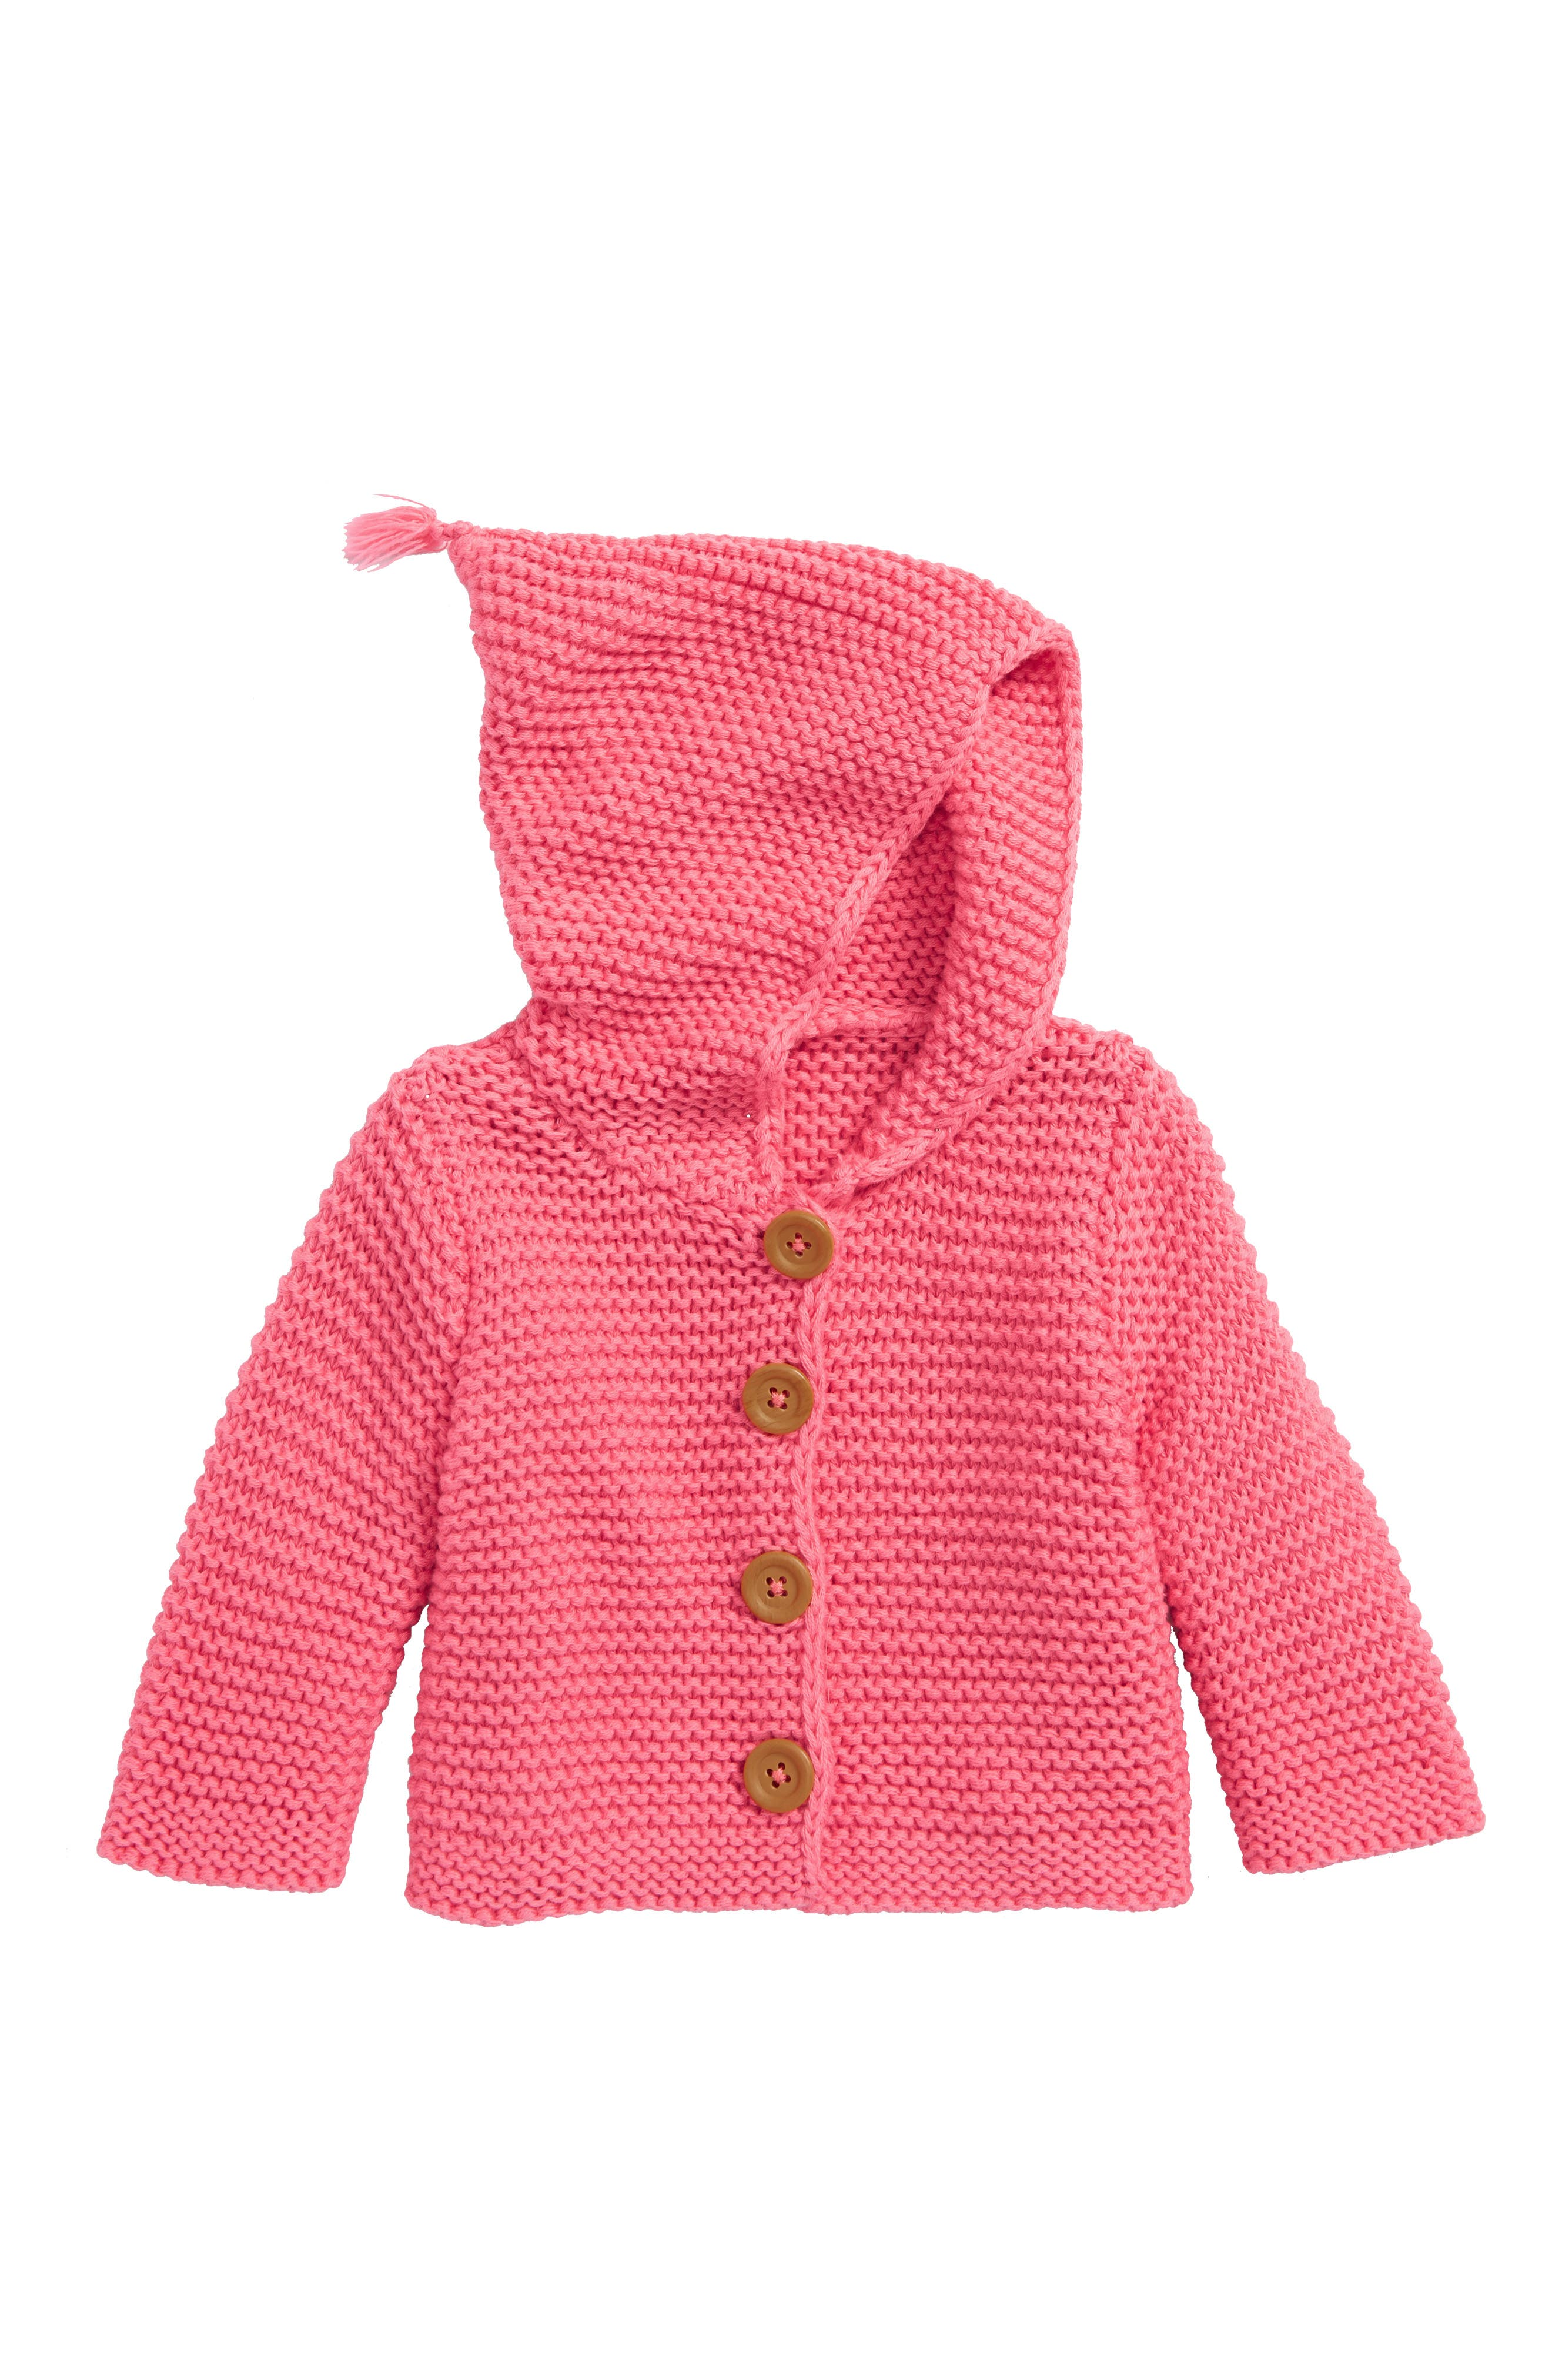 Nordstrom Baby Lofty Organic Cotton Hooded Cardigan (Baby Girls)